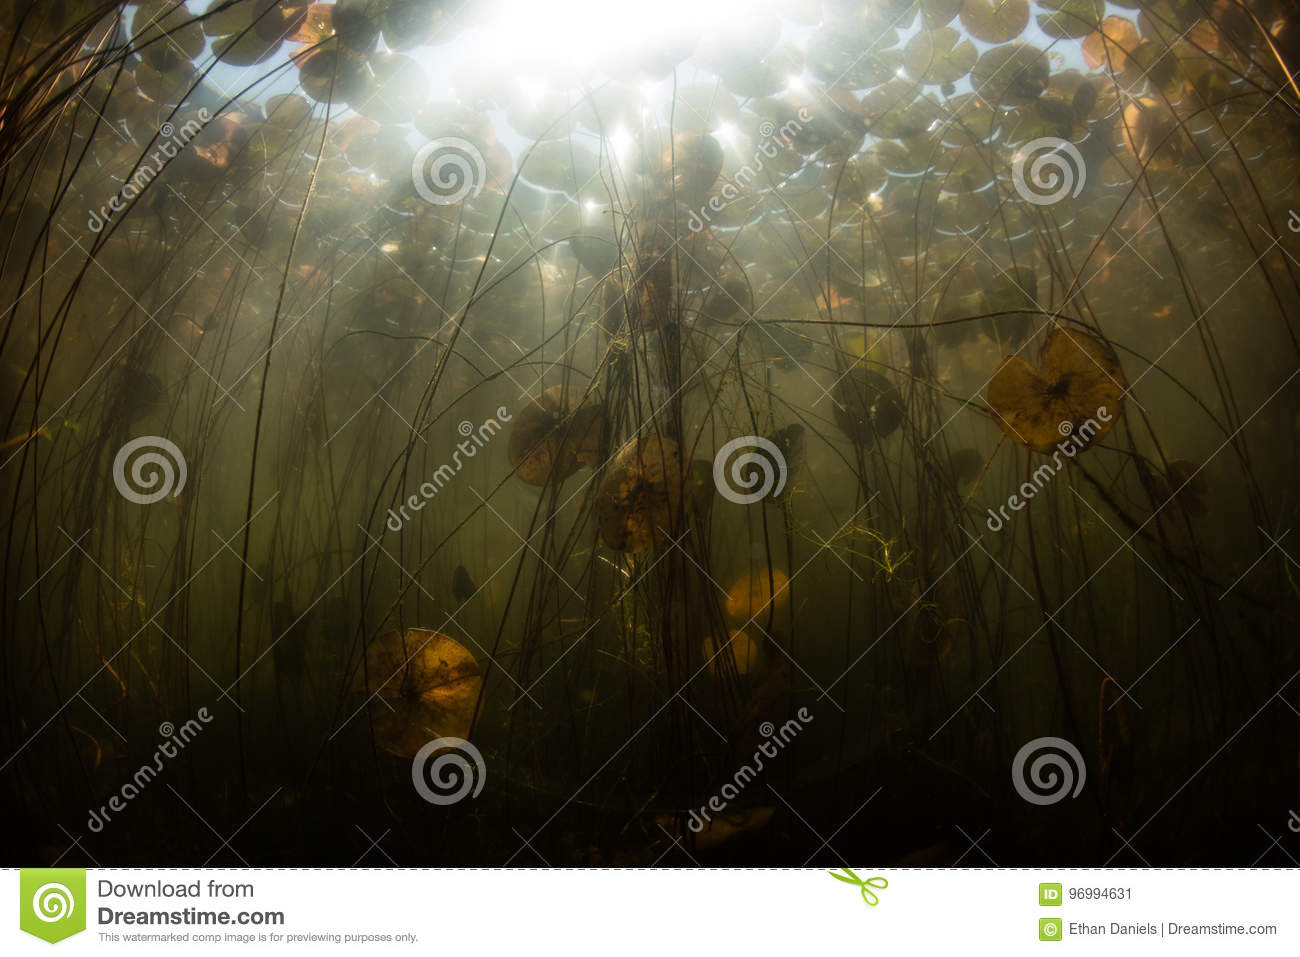 Sunlight and Lily Pads Underwater in New England Lake